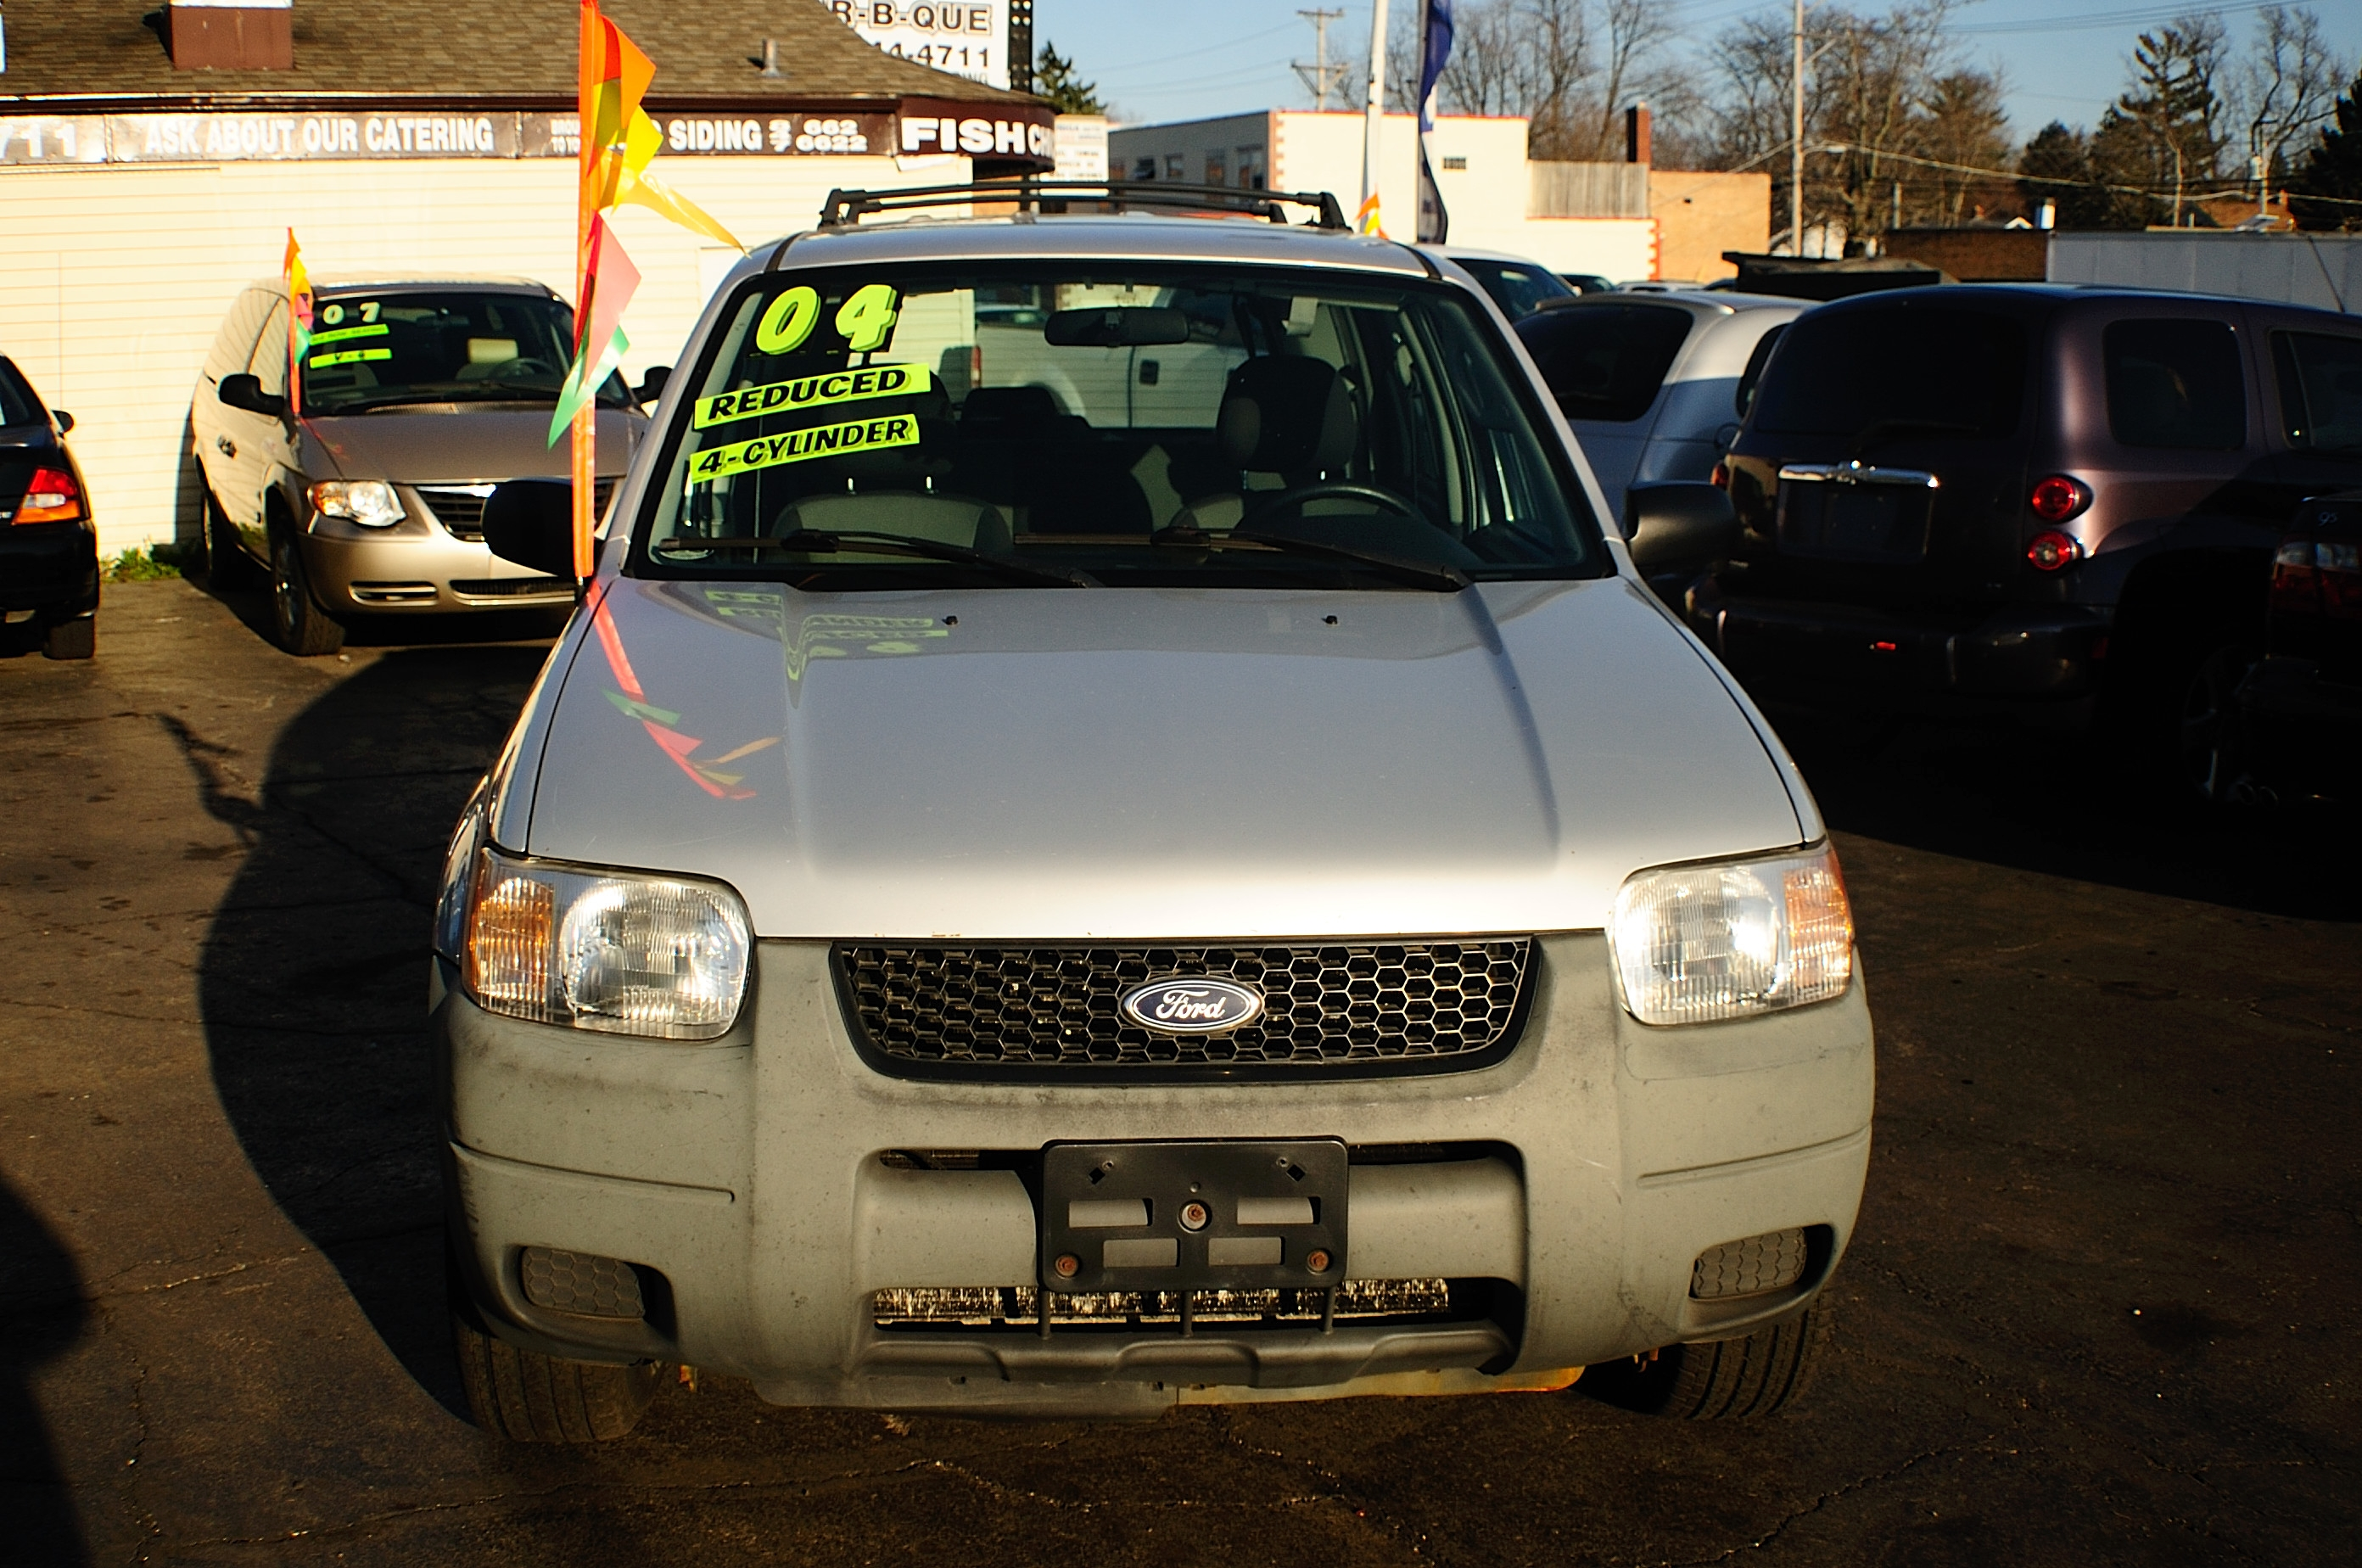 2004 Ford Escape 4Dr Silver 4x2 Manual SUV sale Gurnee Kenosha Mchenry